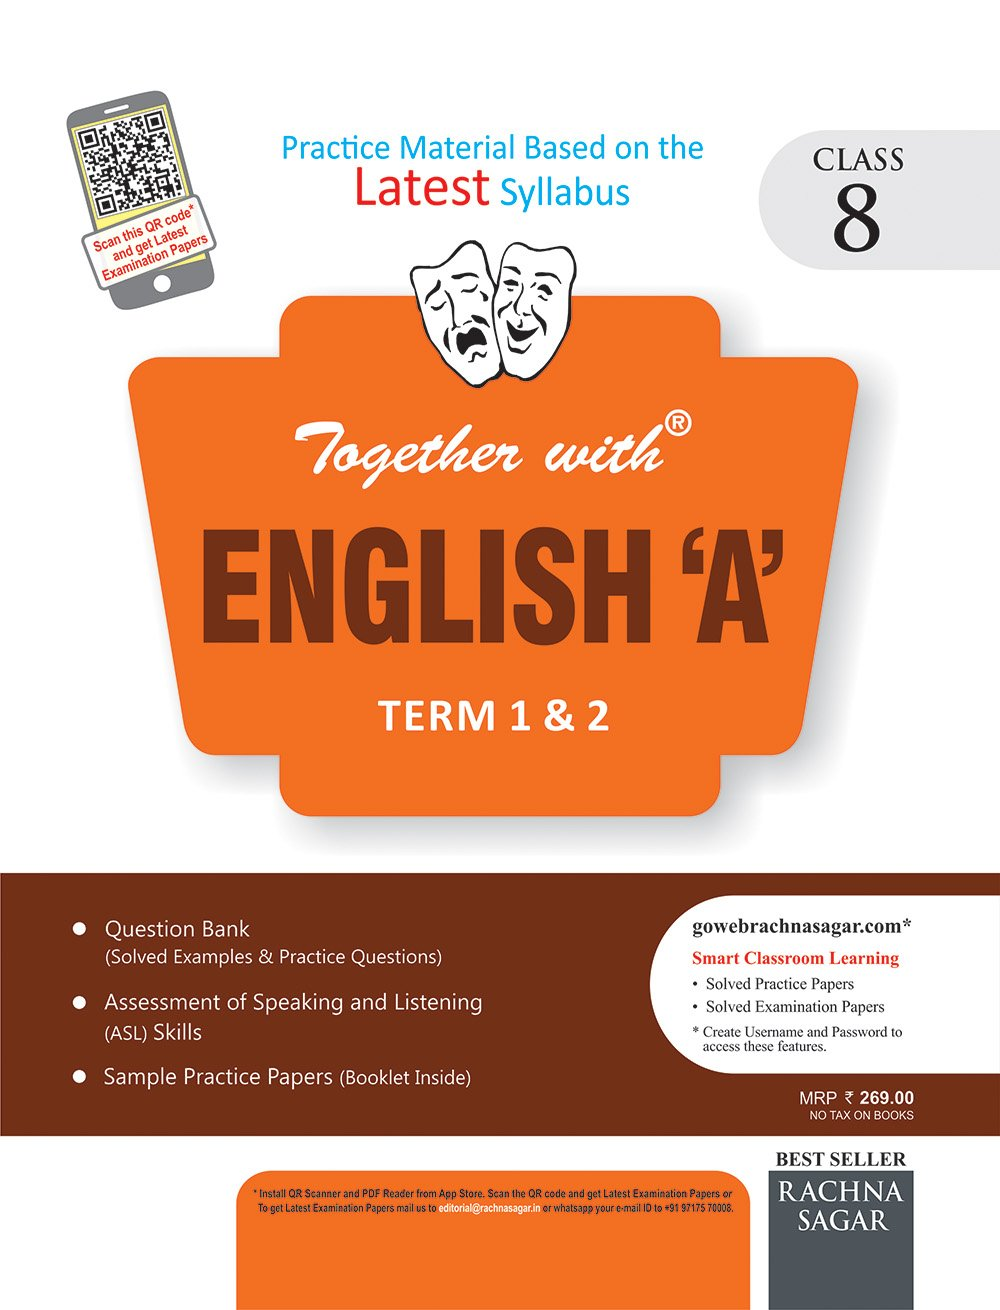 Together with Practice Material for Class 8 English A DAV Term 1 & 2